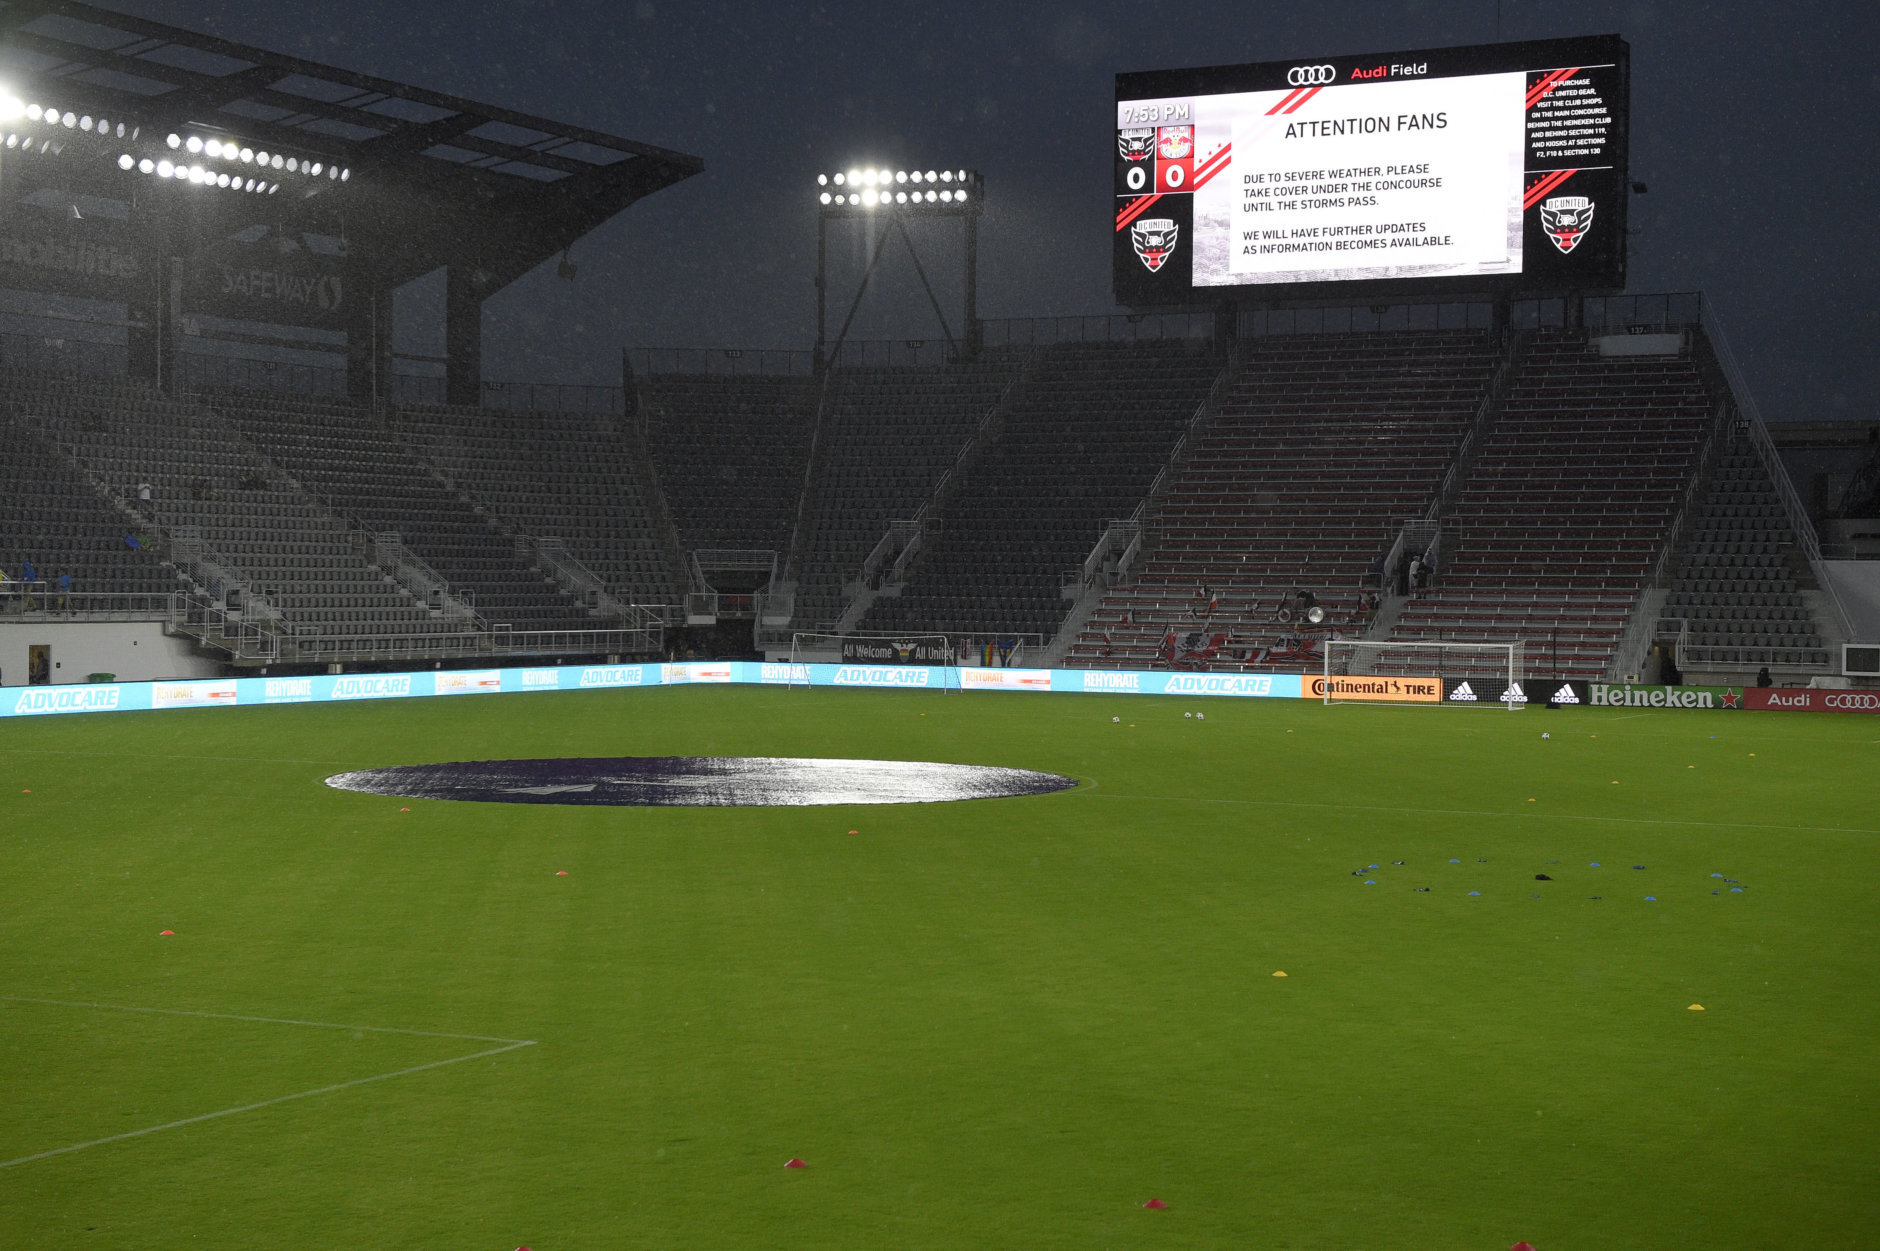 A sign on the scoreboard tells of severe weather which delayed the start of the MLS soccer match between D.C. United and the New York Red Bulls, Wednesday, July 25, 2018, in Washington. (AP Photo/Nick Wass)